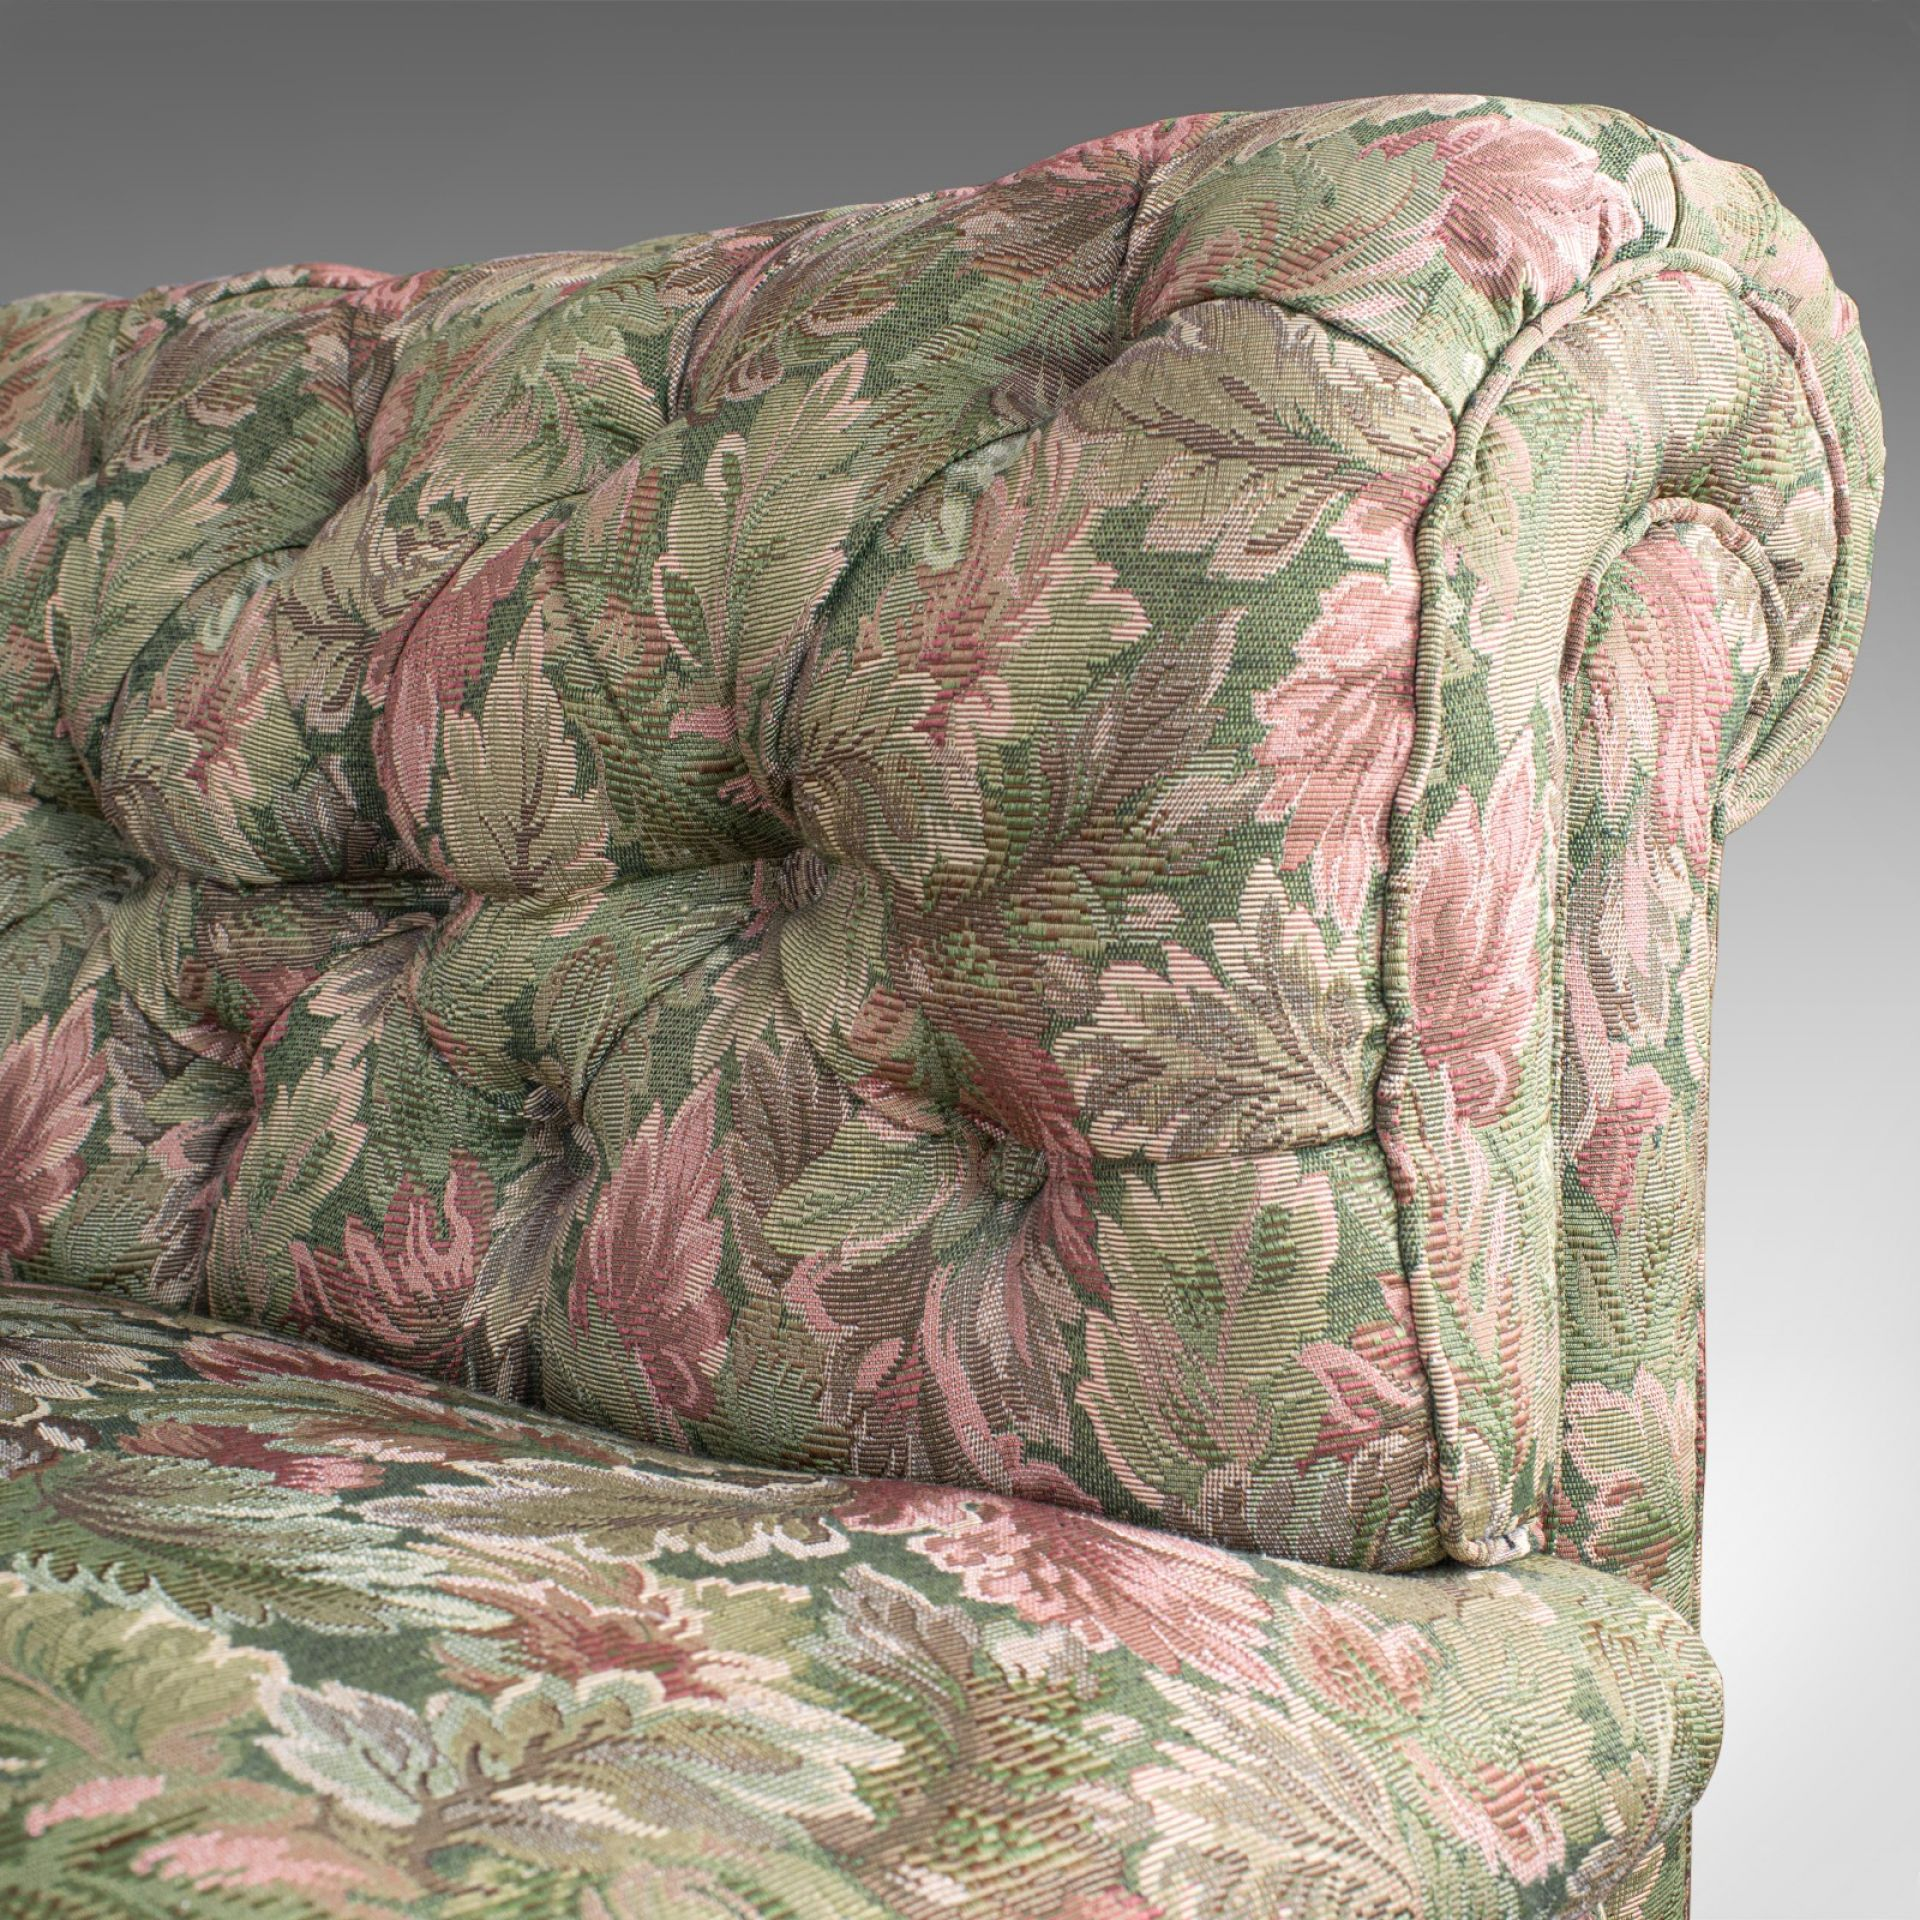 Antique Chesterfield Sofa, English, Textile, Mahogany, Couch, Seats 2 to 3